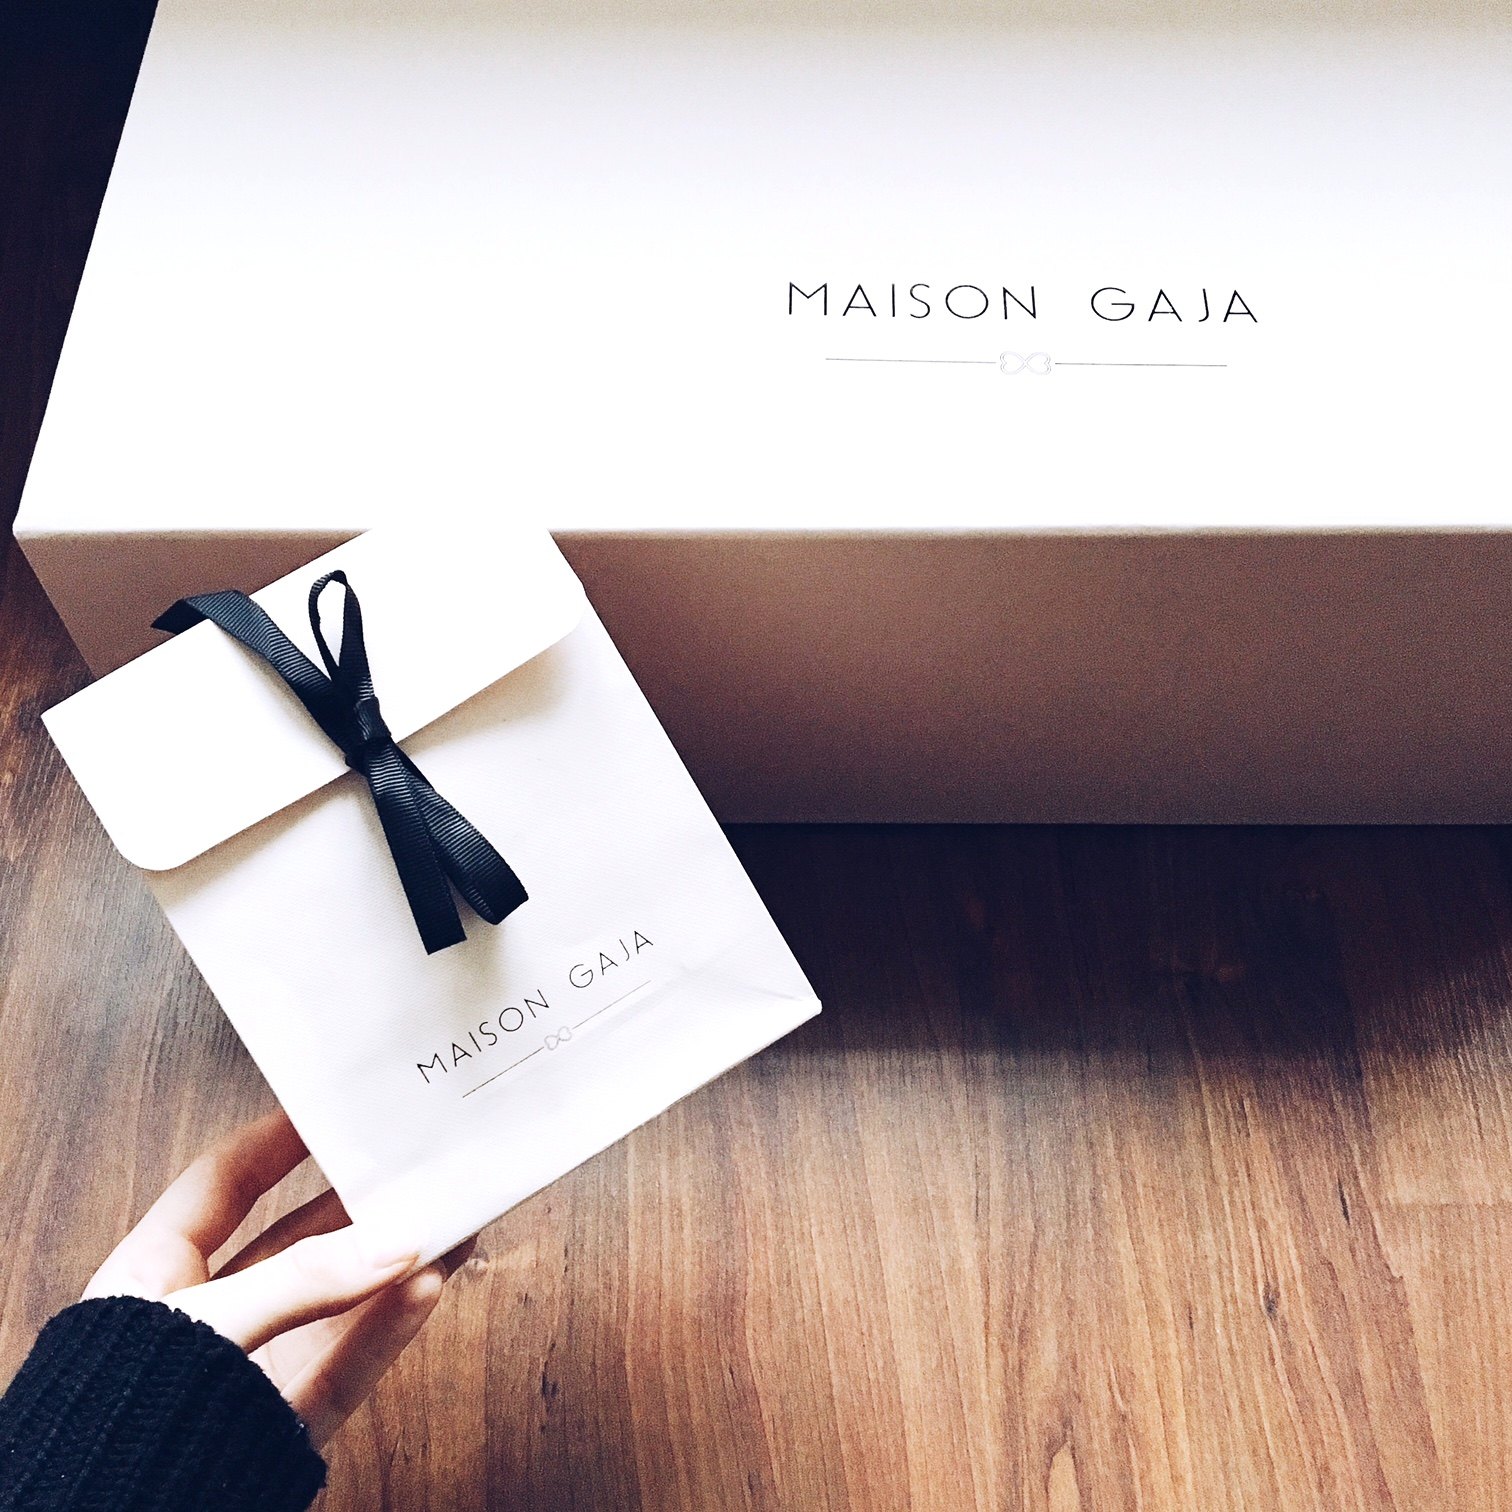 maison-gaja-packaging